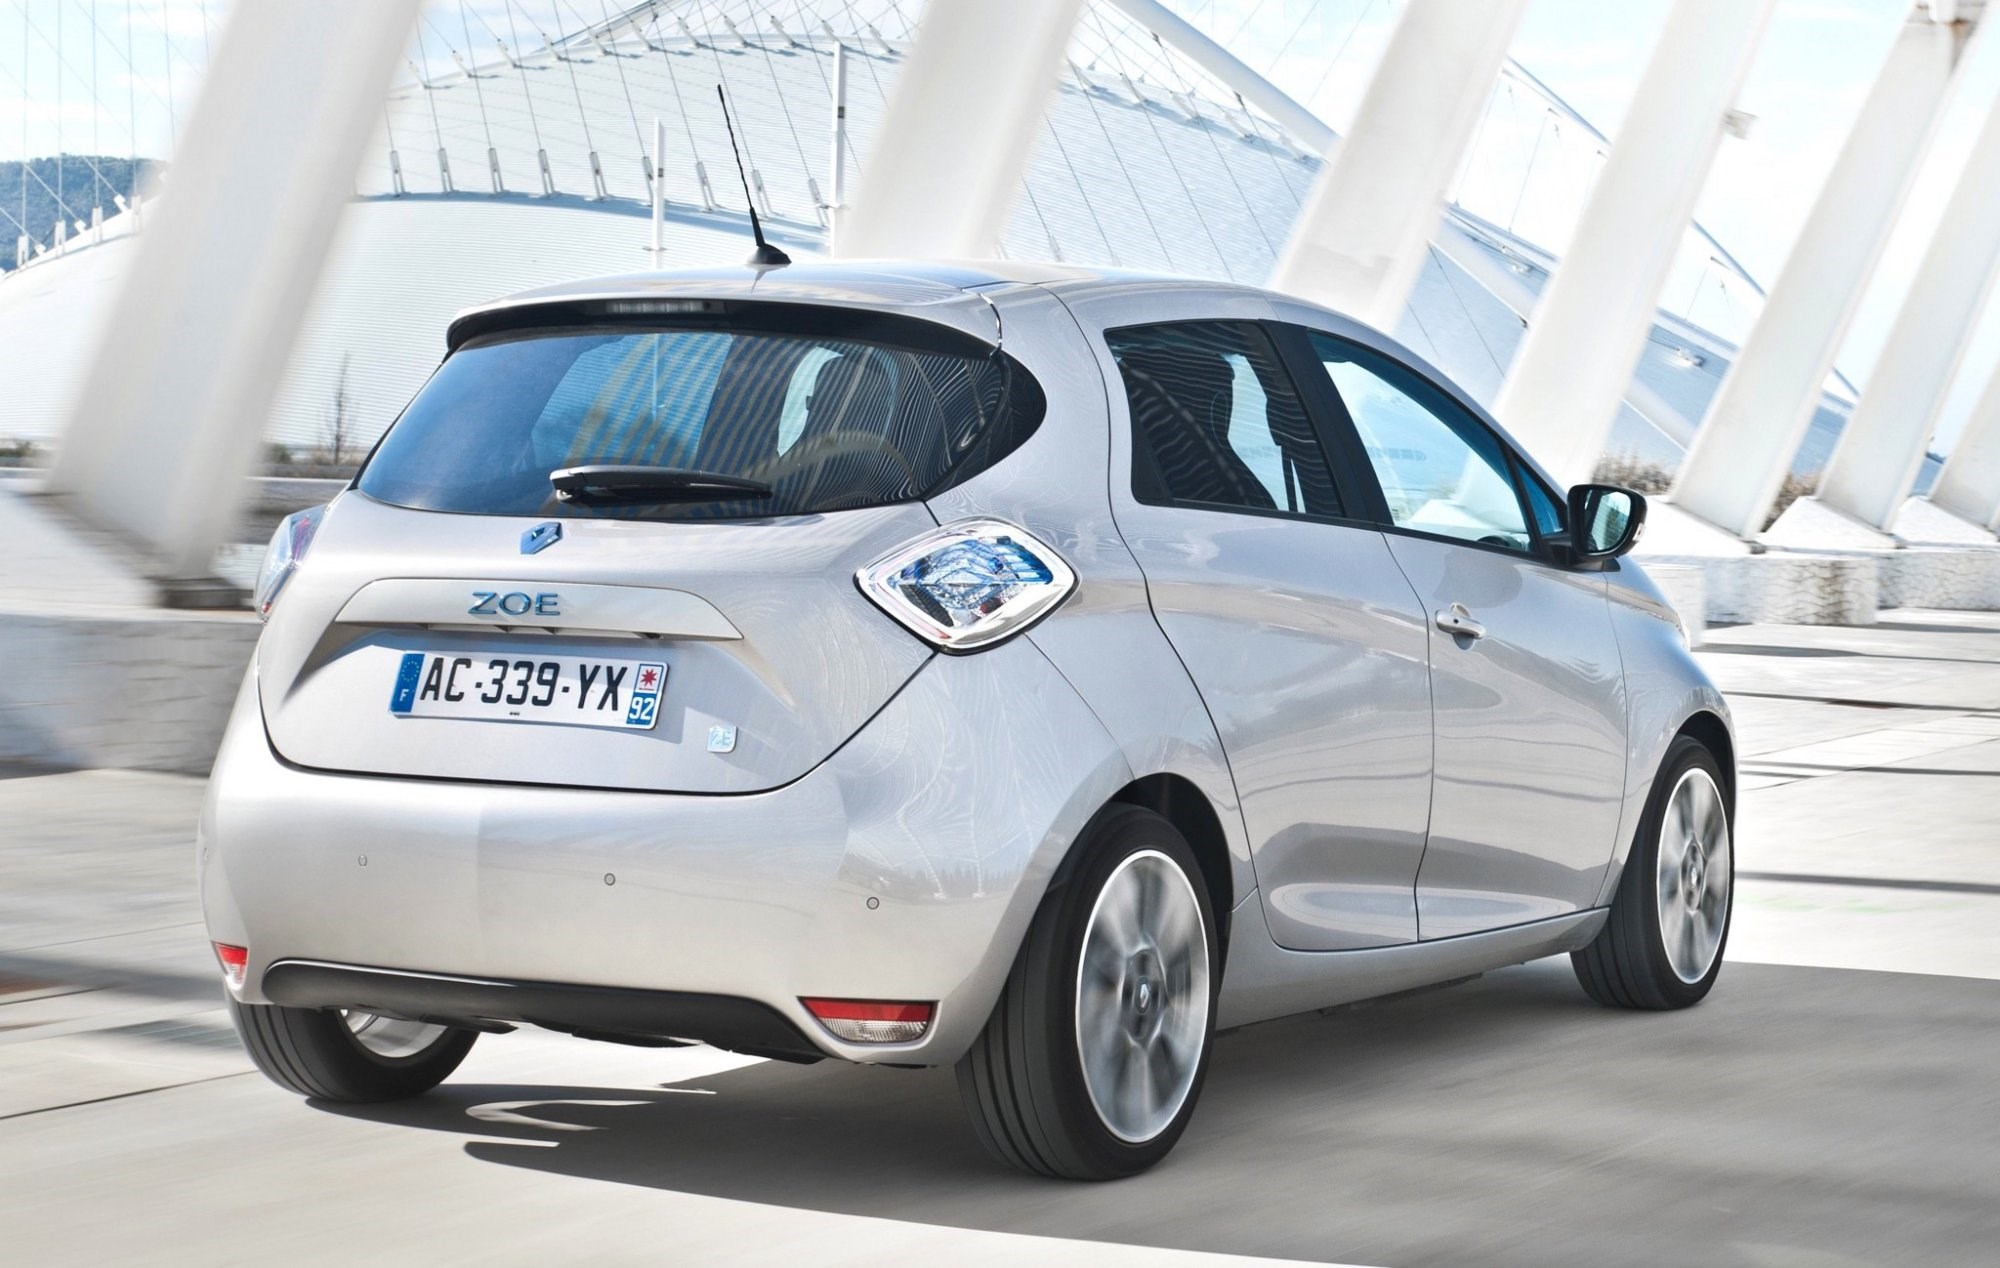 2018 renault zoe. plain zoe the renault zoe could arrive after all to 2018 renault zoe s